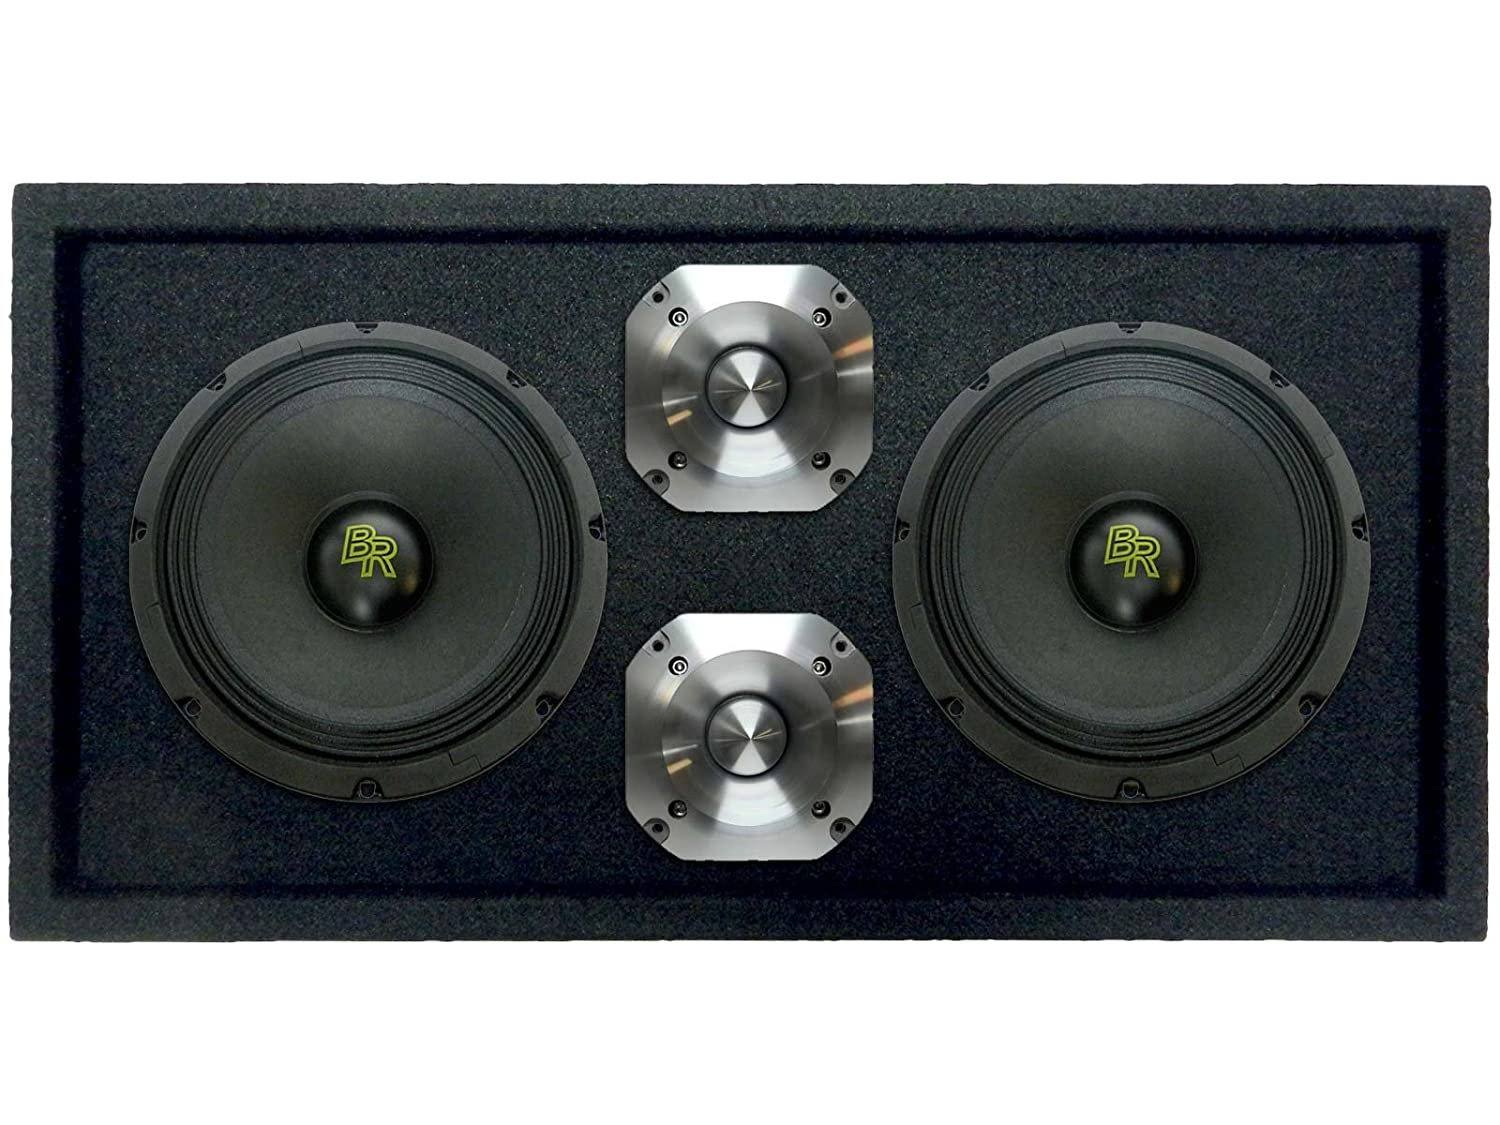 Bass Rockers Loaded 1200 Watts Speaker Pod Box Two 8 Dual 4 Ohm Subwoofer Wiring 3 Subs Also 2 Sub To A 300w Midrange Speakers And 15 Bullet Tweeters 1200w Total Power Handling Brch8 2brm8lp Brcp 24